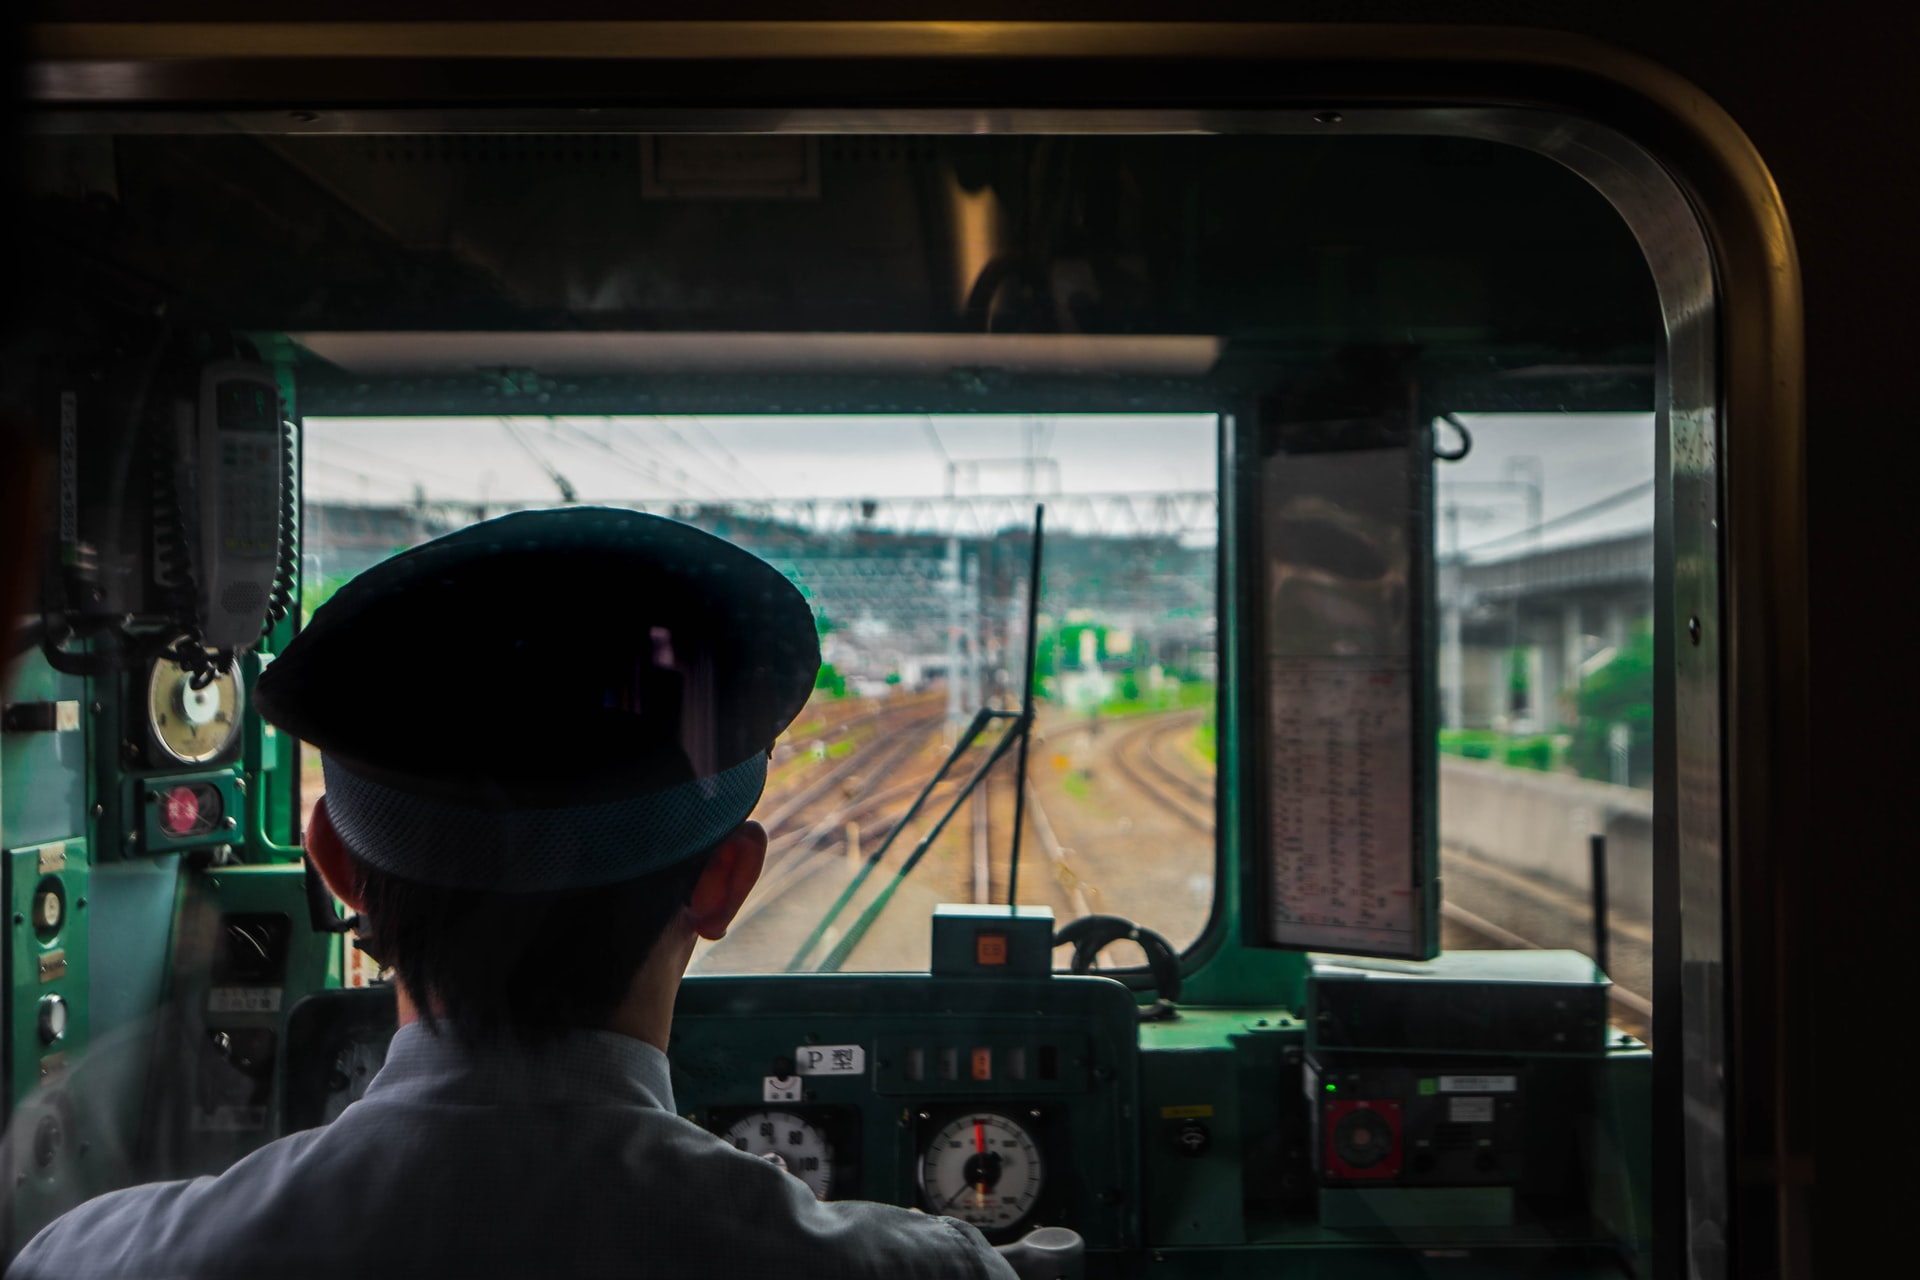 Rail Firm Delays VR to Enhance Safety on the Tracks